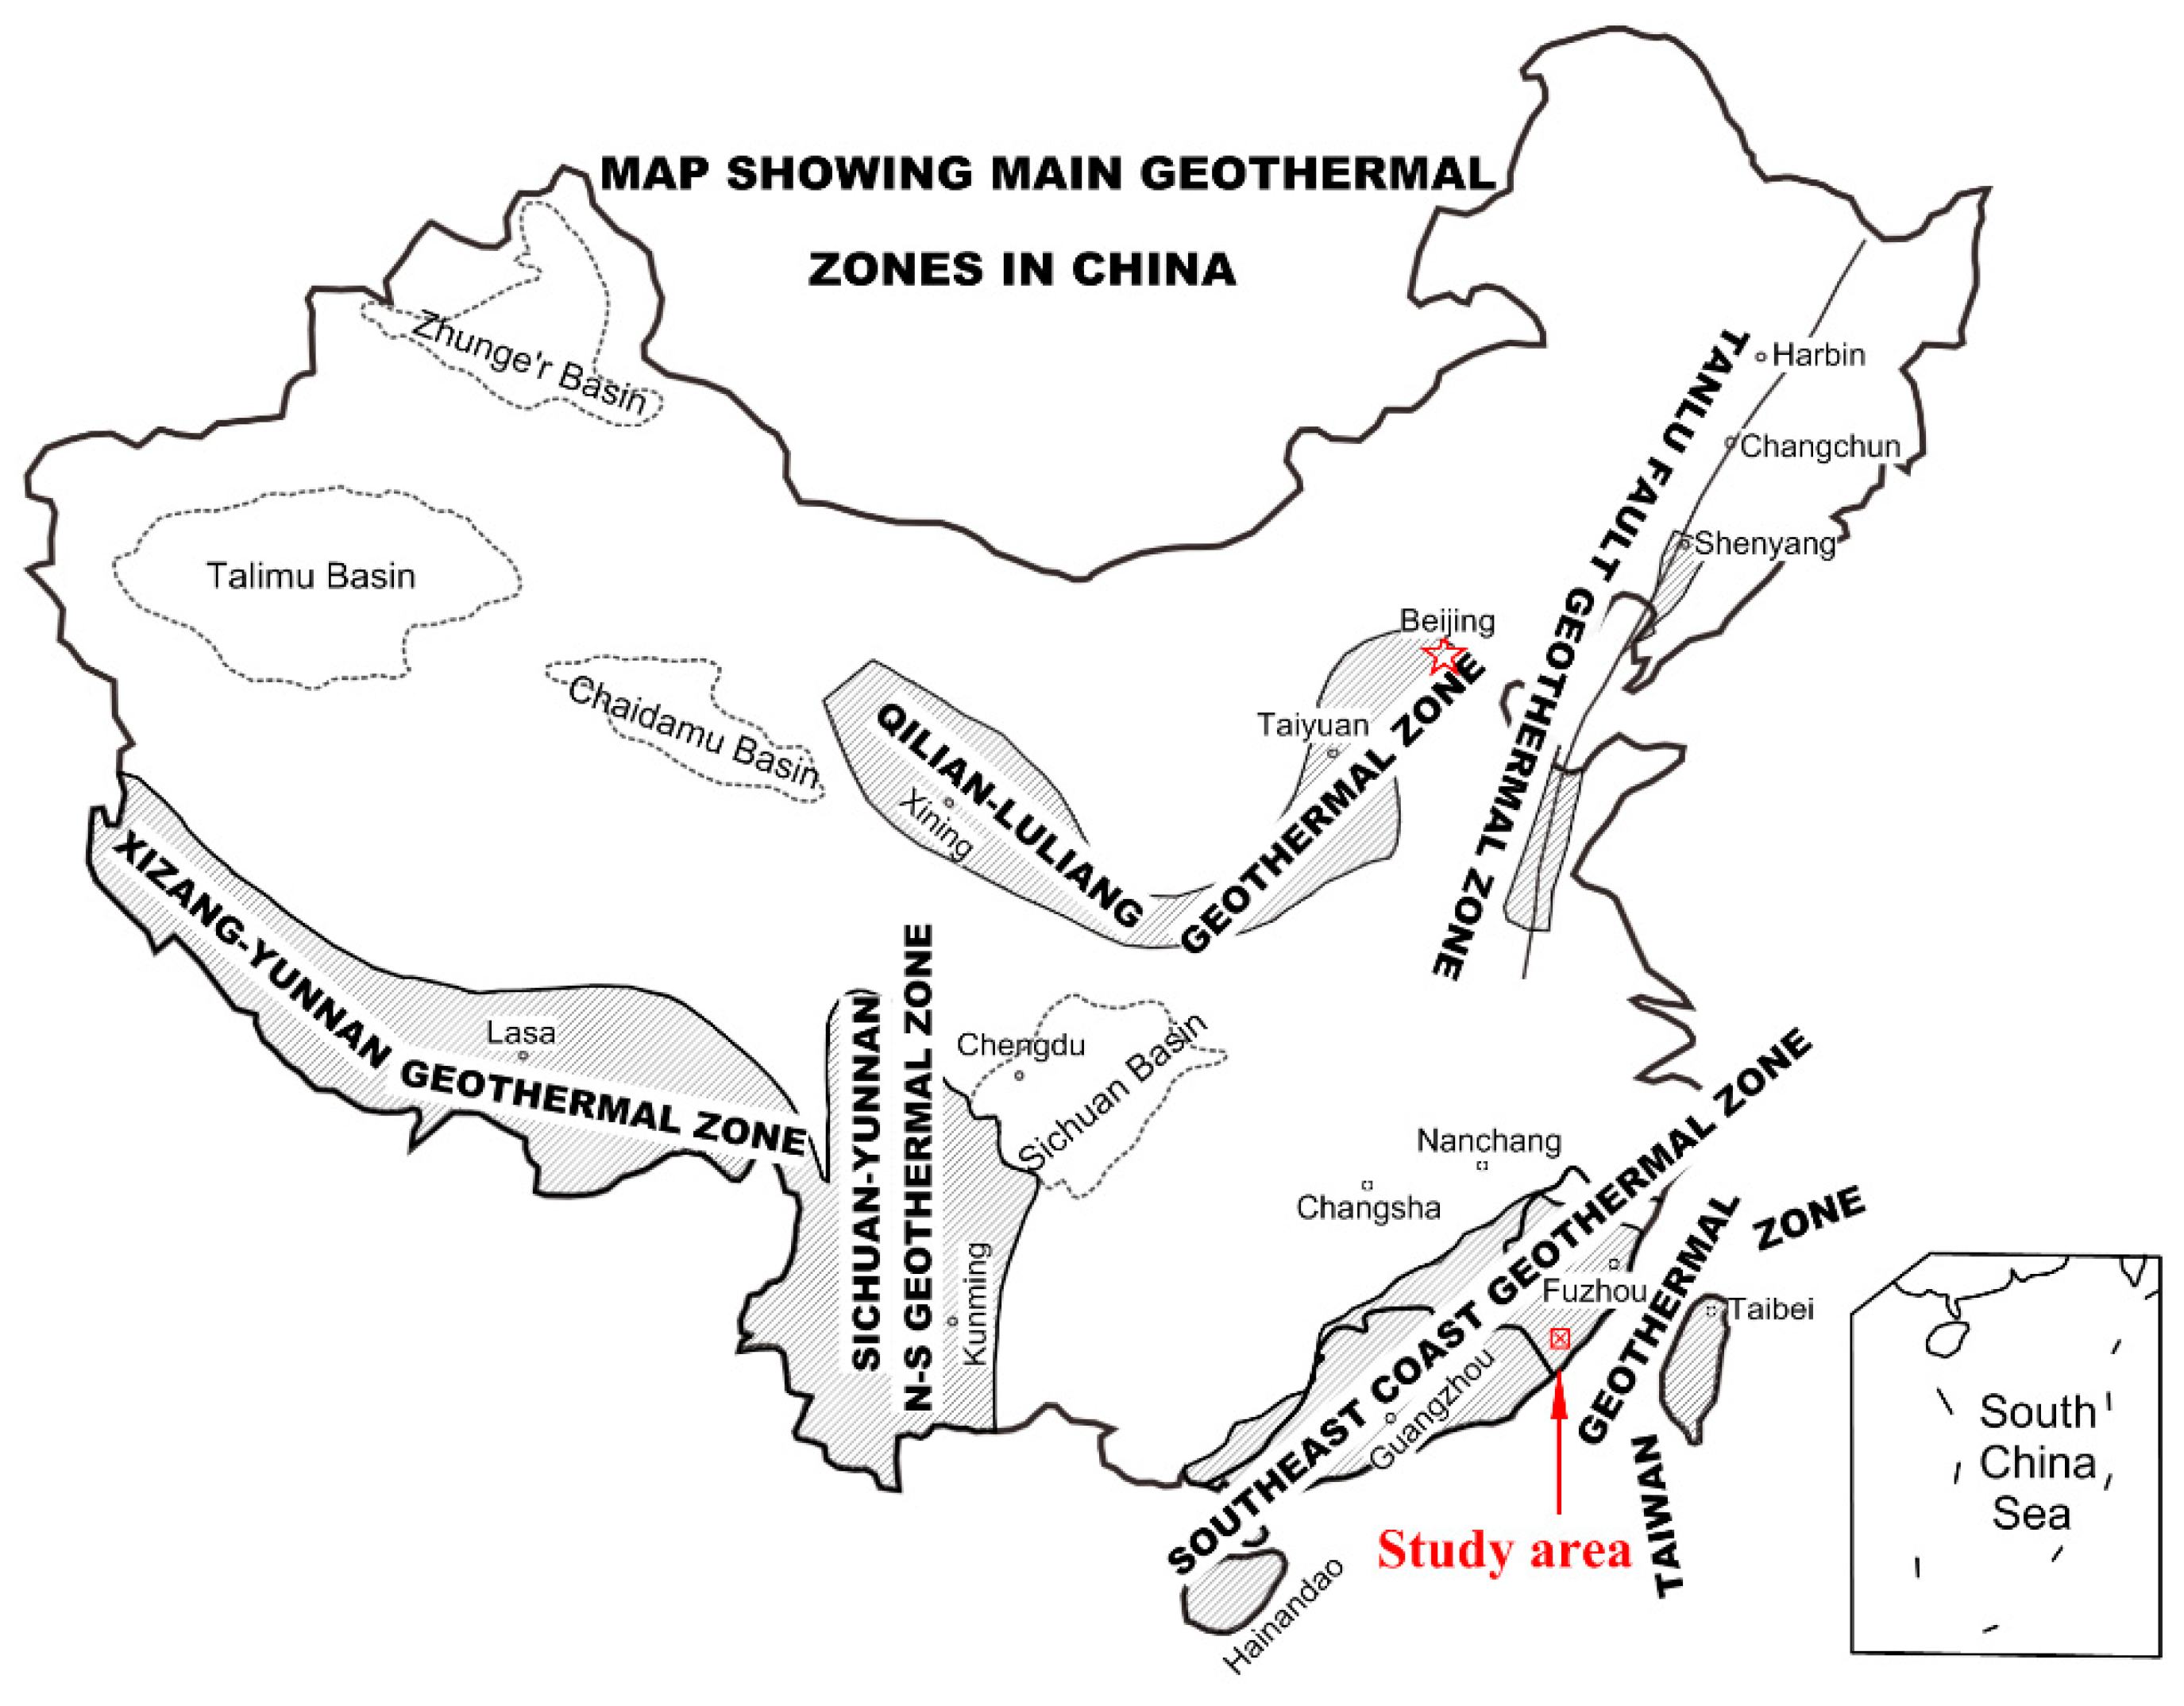 Geothermal Zone Valve Taco Wiring Diagram 557 Energies Free Full Text Imaging Of The Zhangzhou 2750x2148